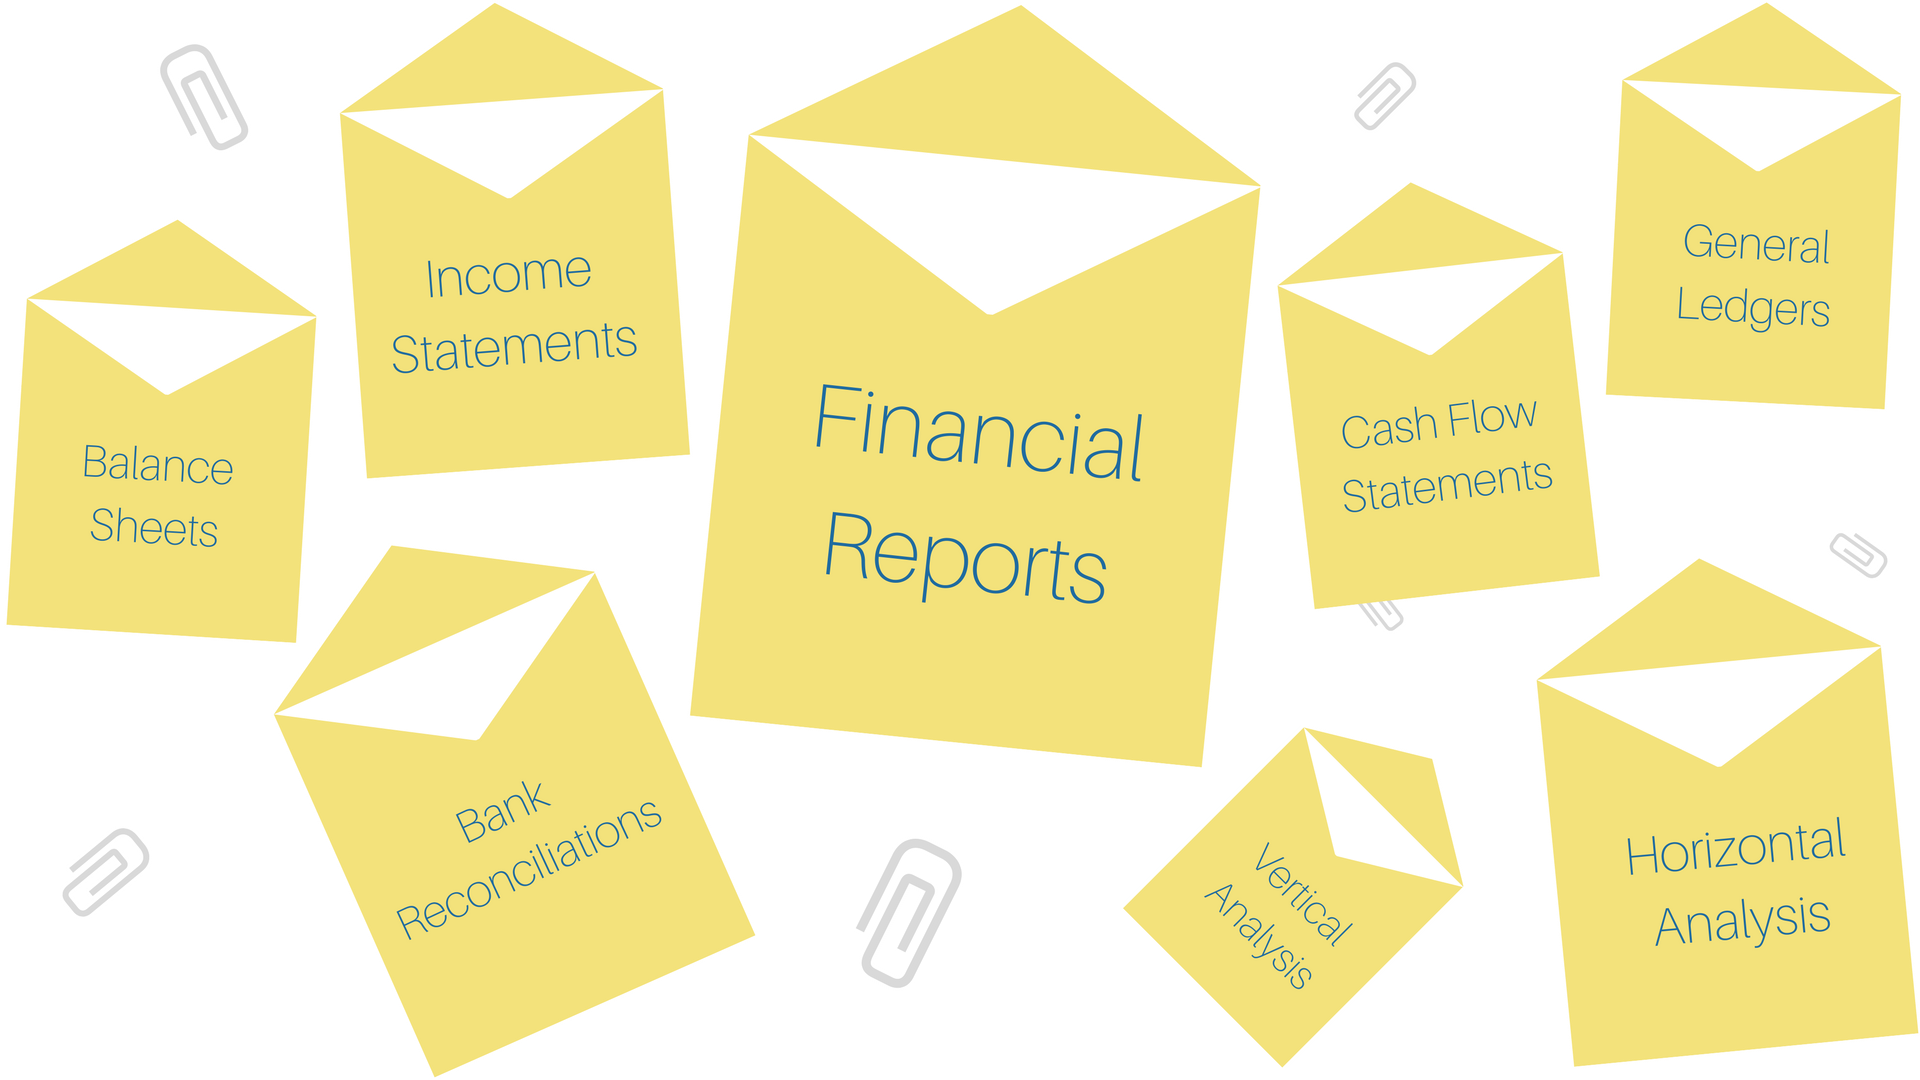 Your Financial Reports, Income Statements, Balance Sheets, Bank Reconciliations, Cash Flow Statements, General Ledgers, Vertical Analysis and your Horizontal Analysis.